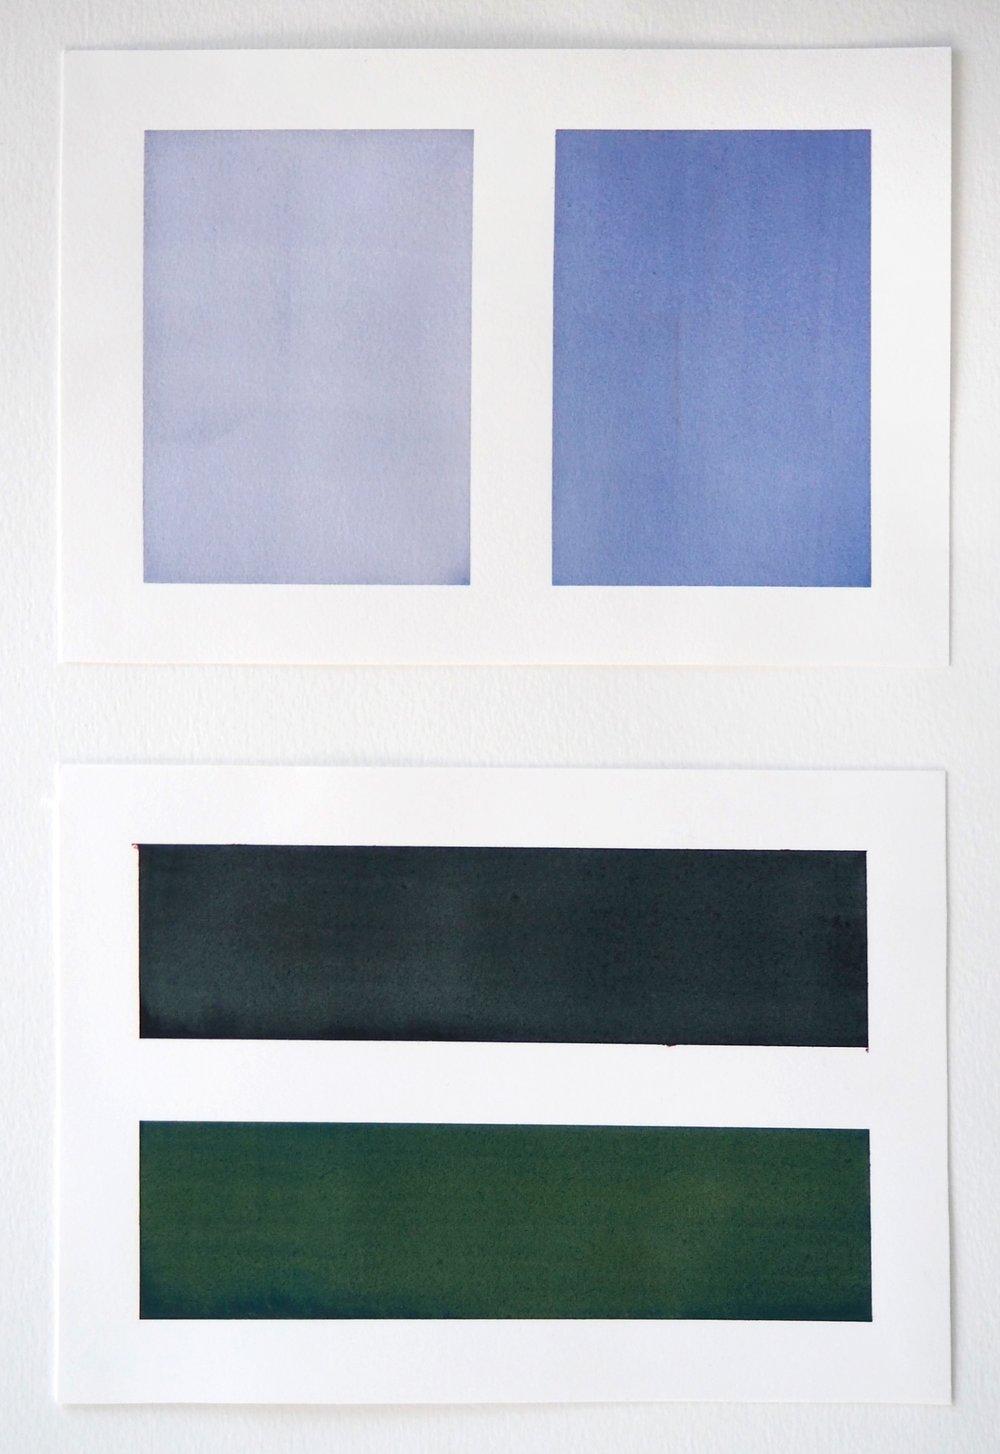 Layers and Reflections I, 2018, 47 x 37 $400 - $700 as a pair.jpg